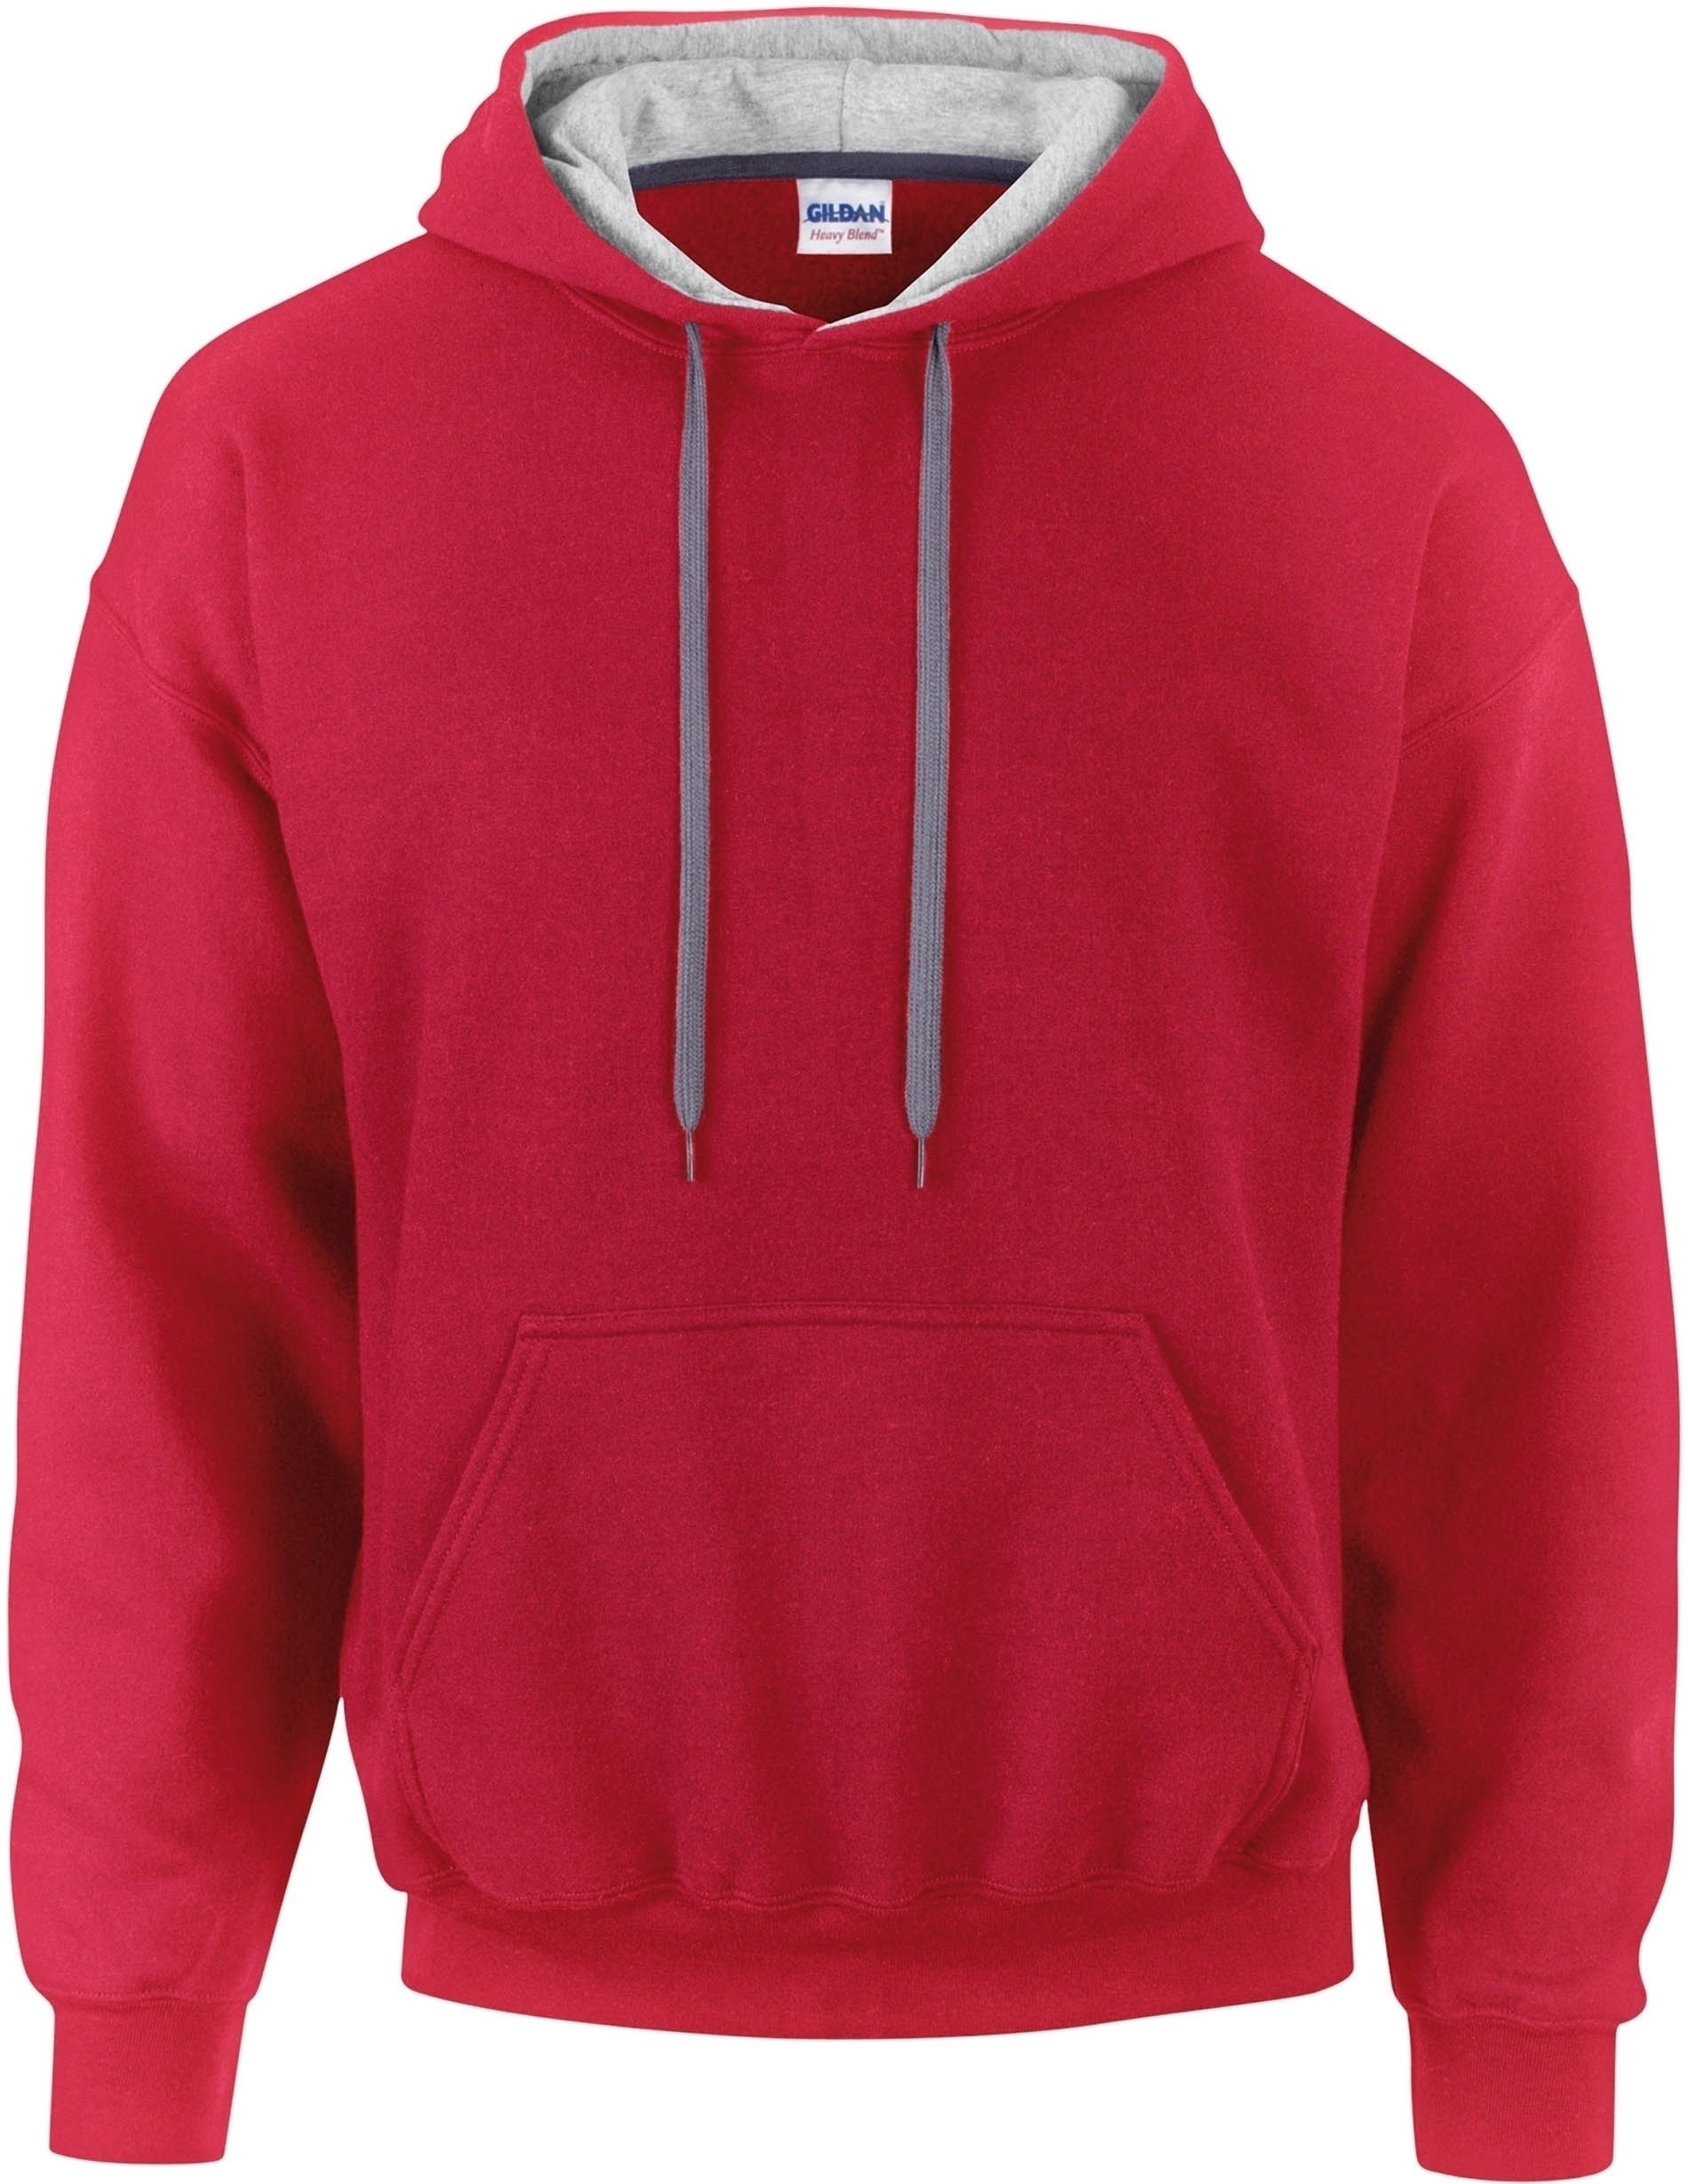 SWEAT-SHIRT CAPUCHE CONSTRASTÉE HEAVY BLEND™ Red / Sport Grey Rouge